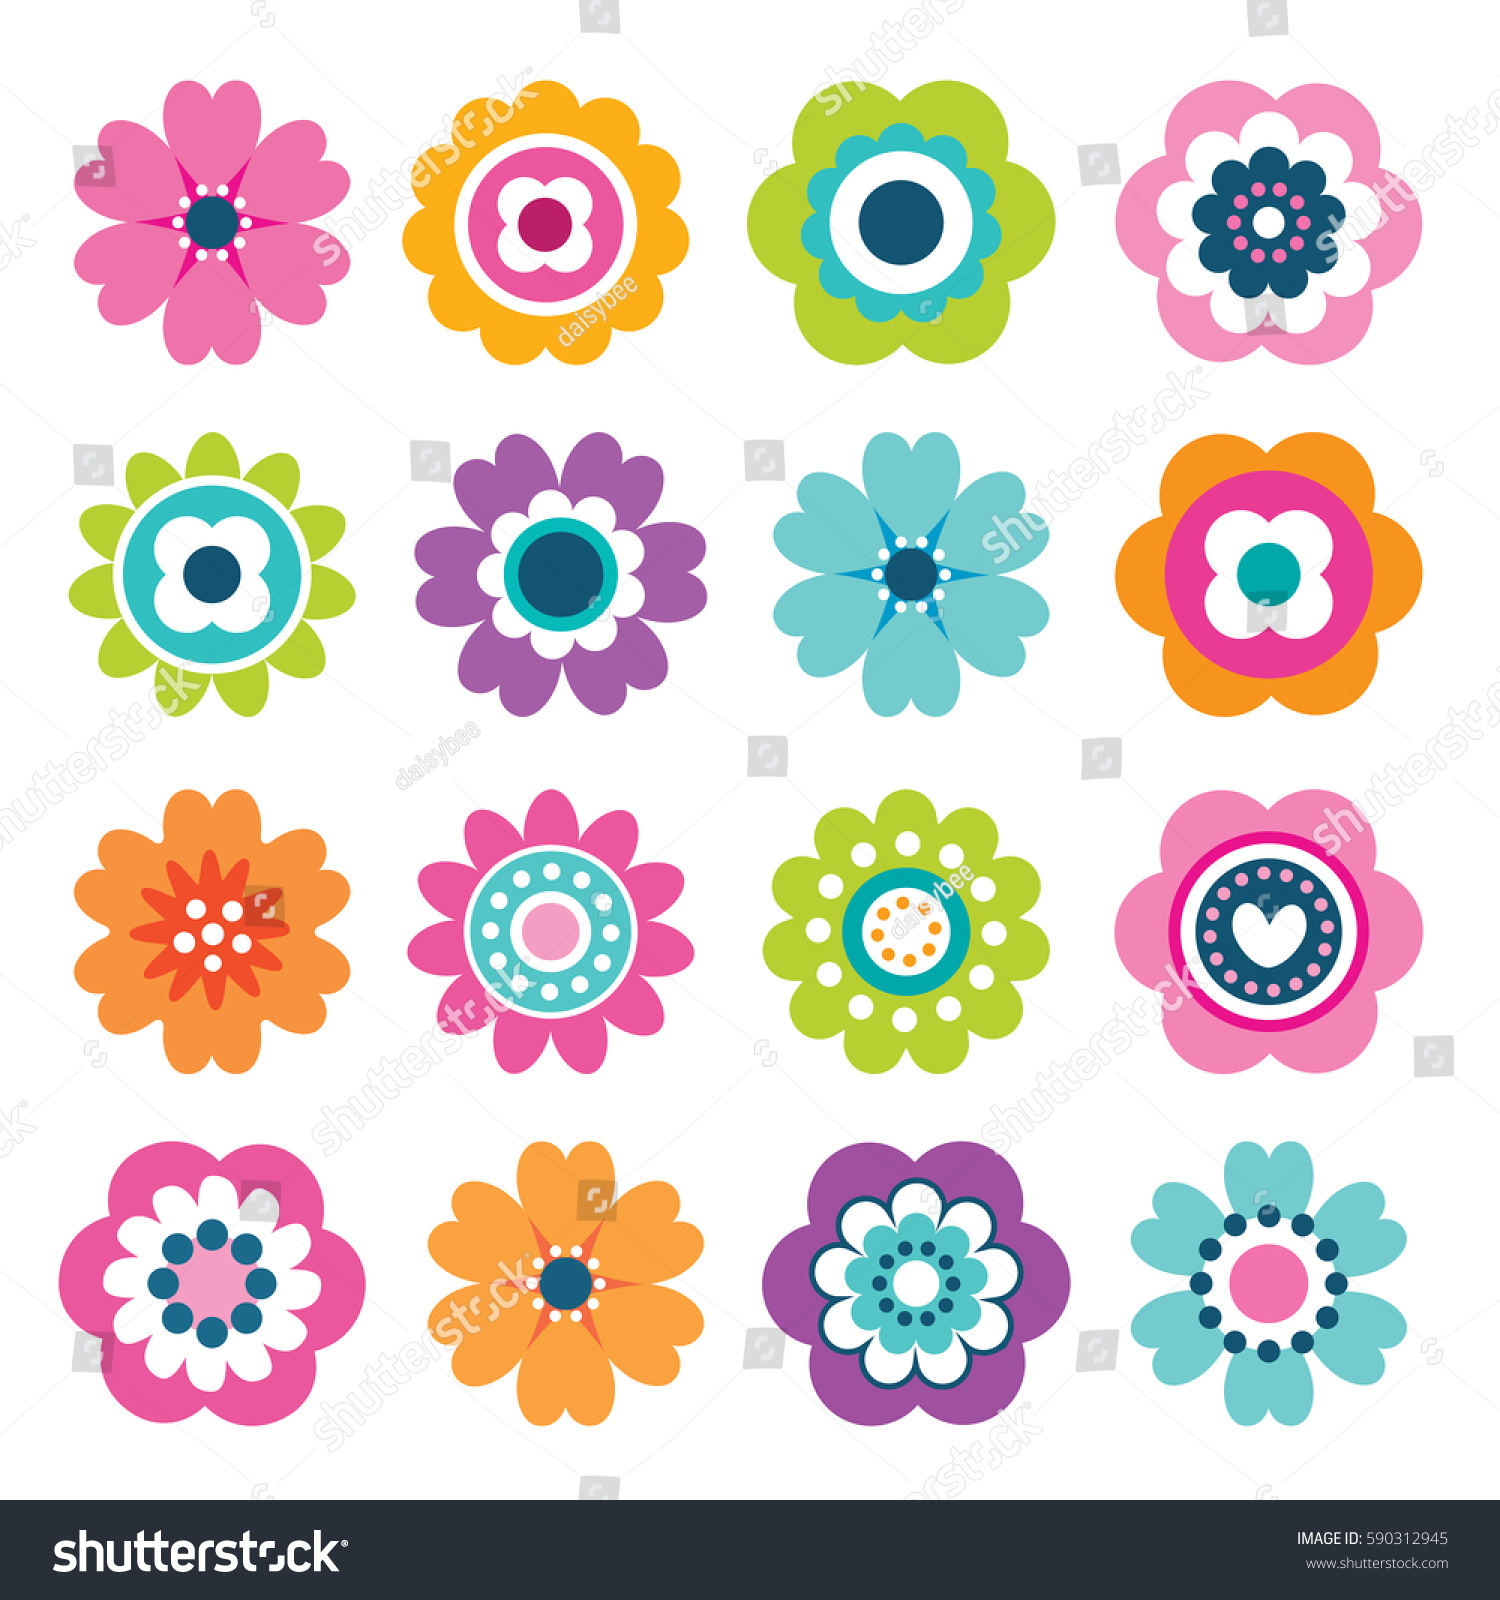 Set of flat Spring flower icons in silhouette isolated on white. Cute retro illustrations in bright colors for stickers, labels, tags, scrapbooking. #590312945